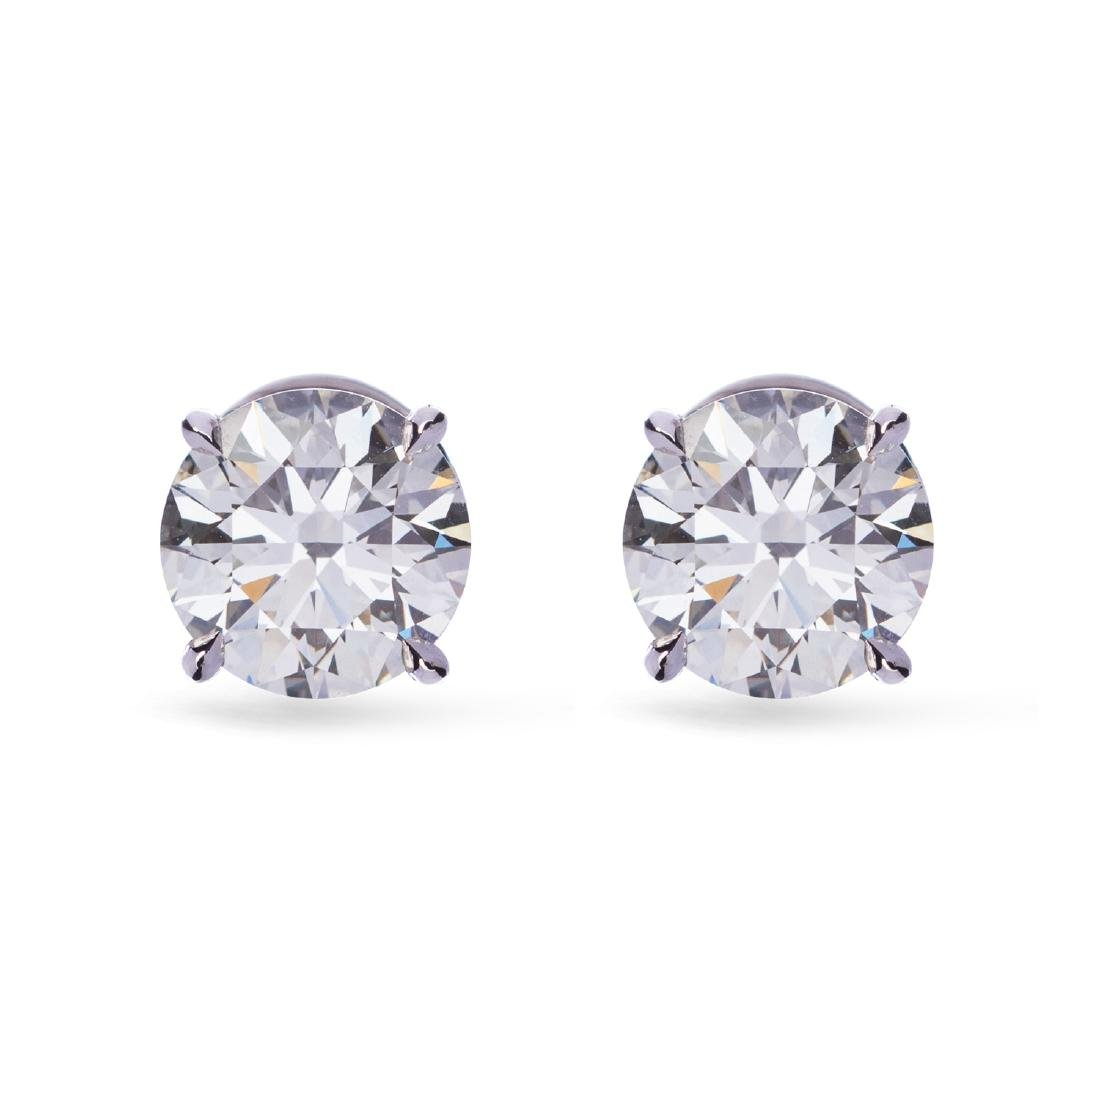 A lively pair of diamond stud earrings